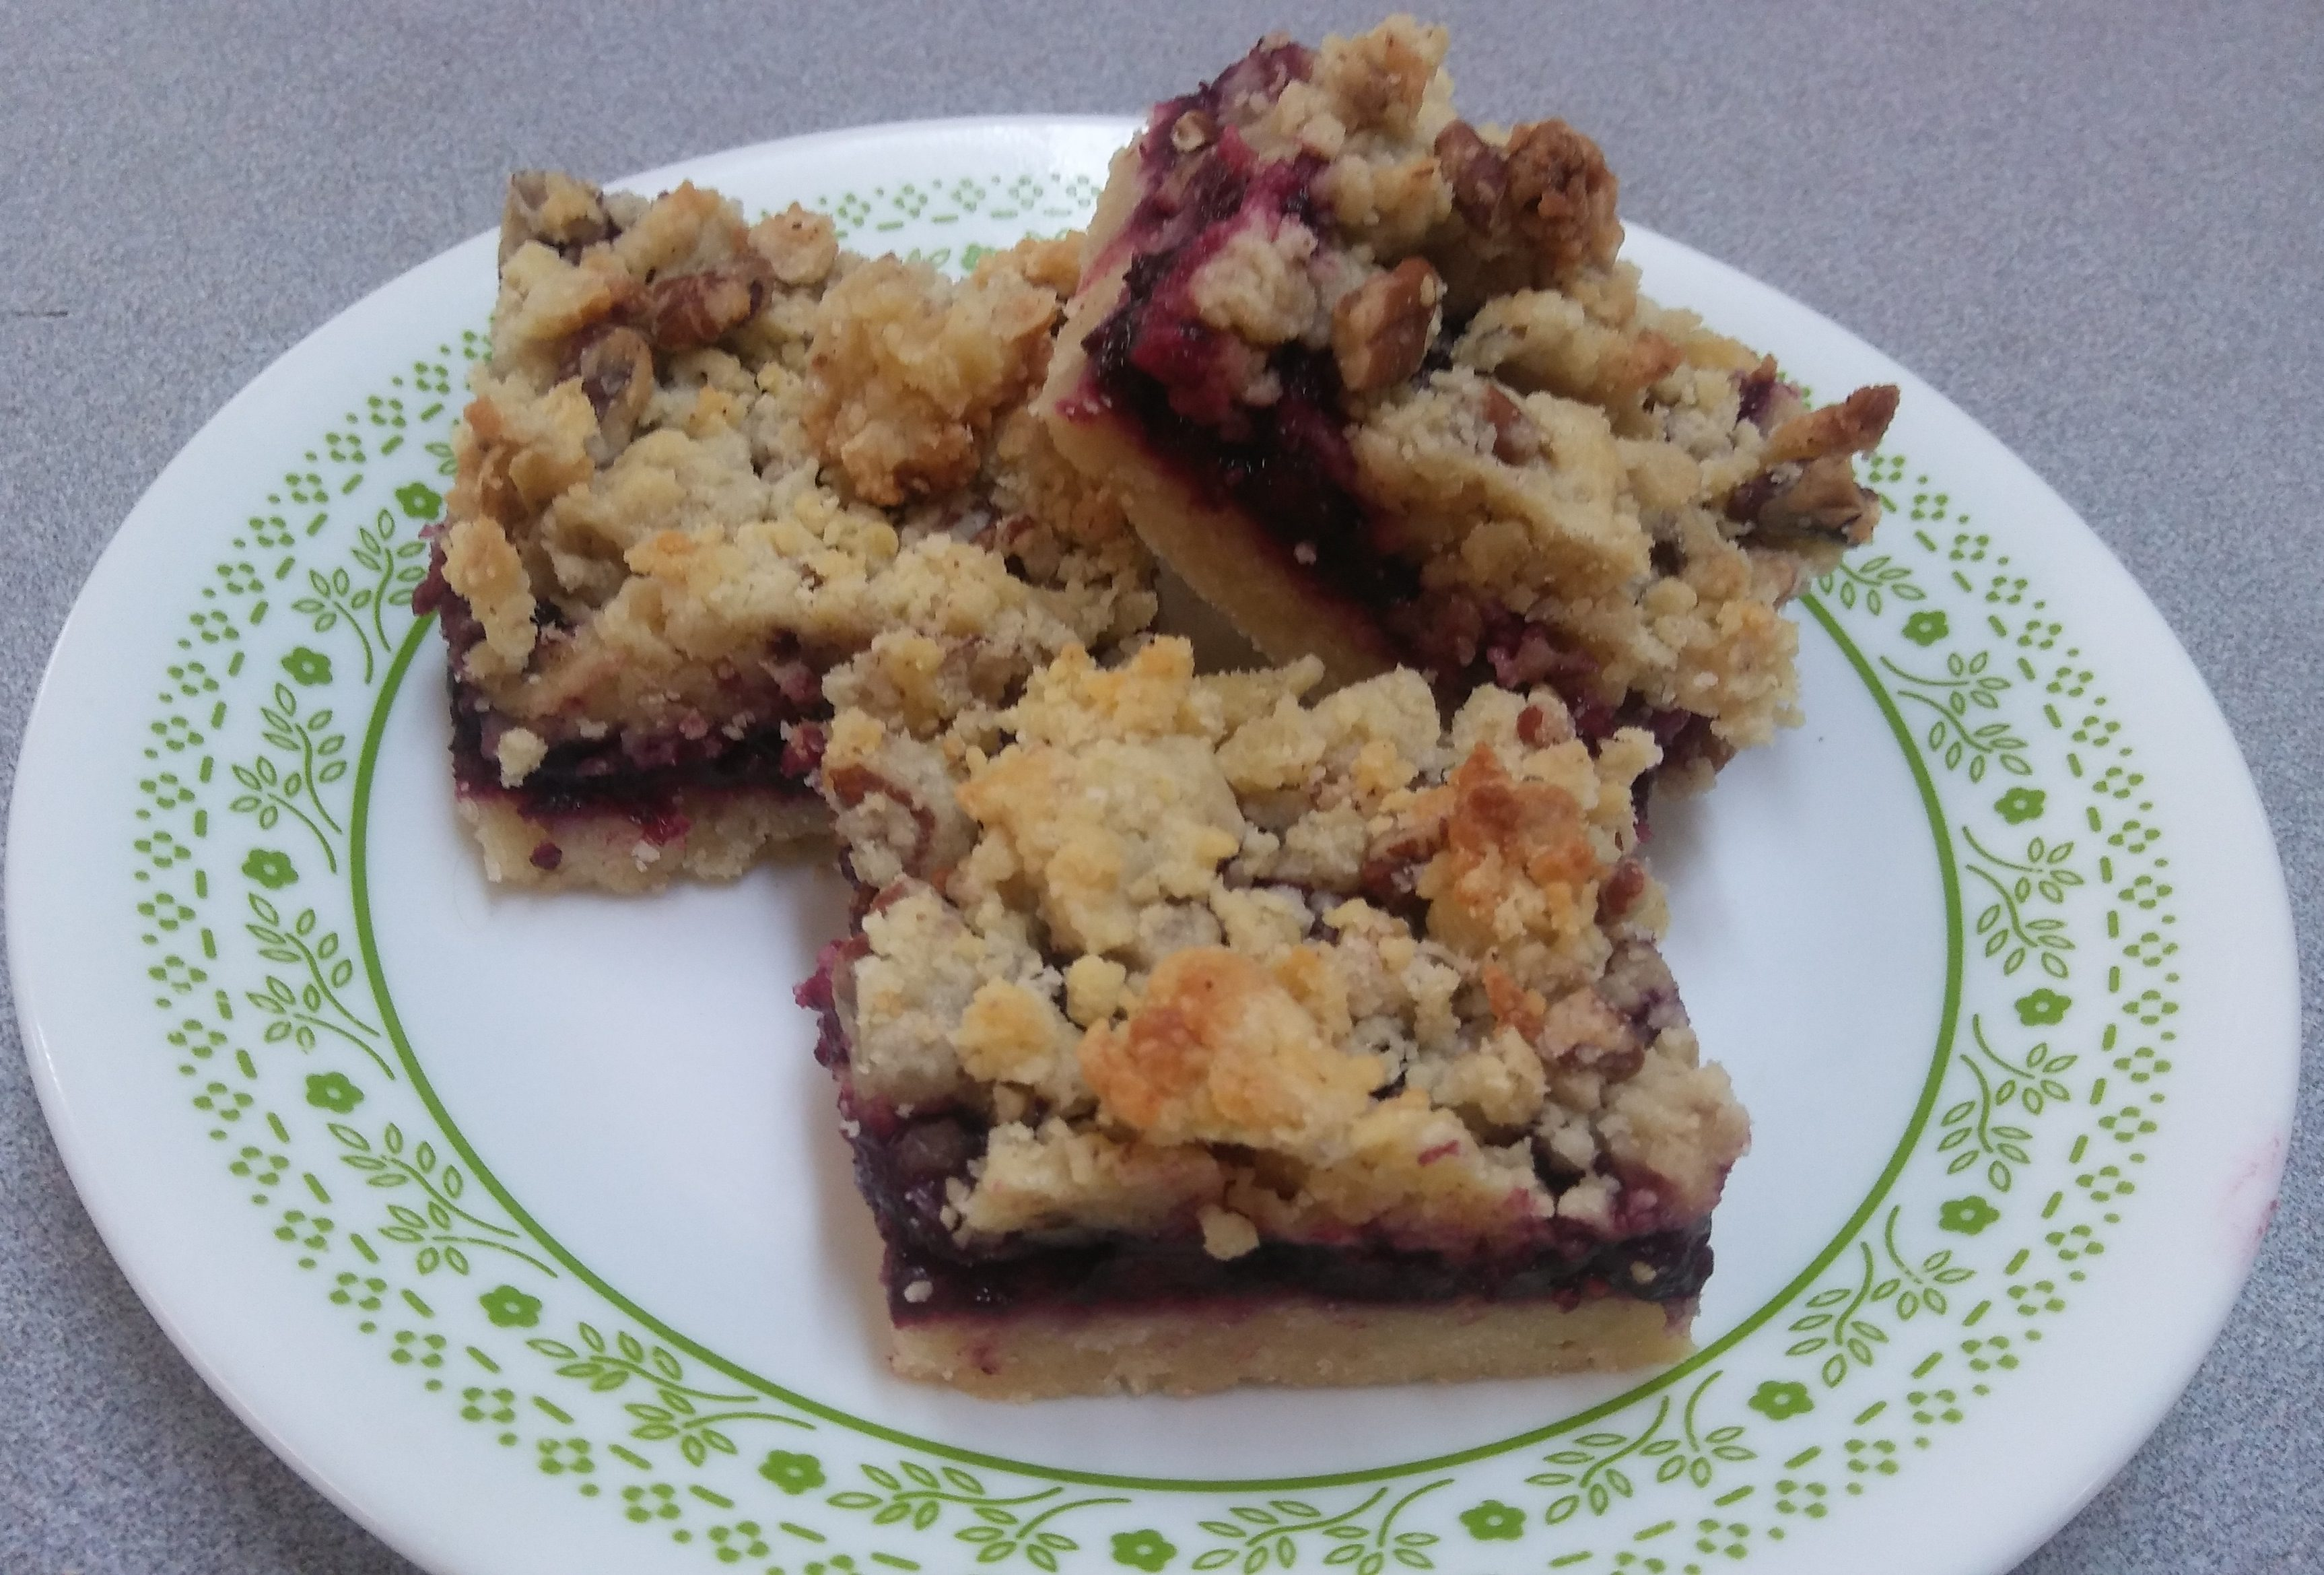 Fruit Cookie Bars - A Tantalizing Blend of Cranberry and Raspberry